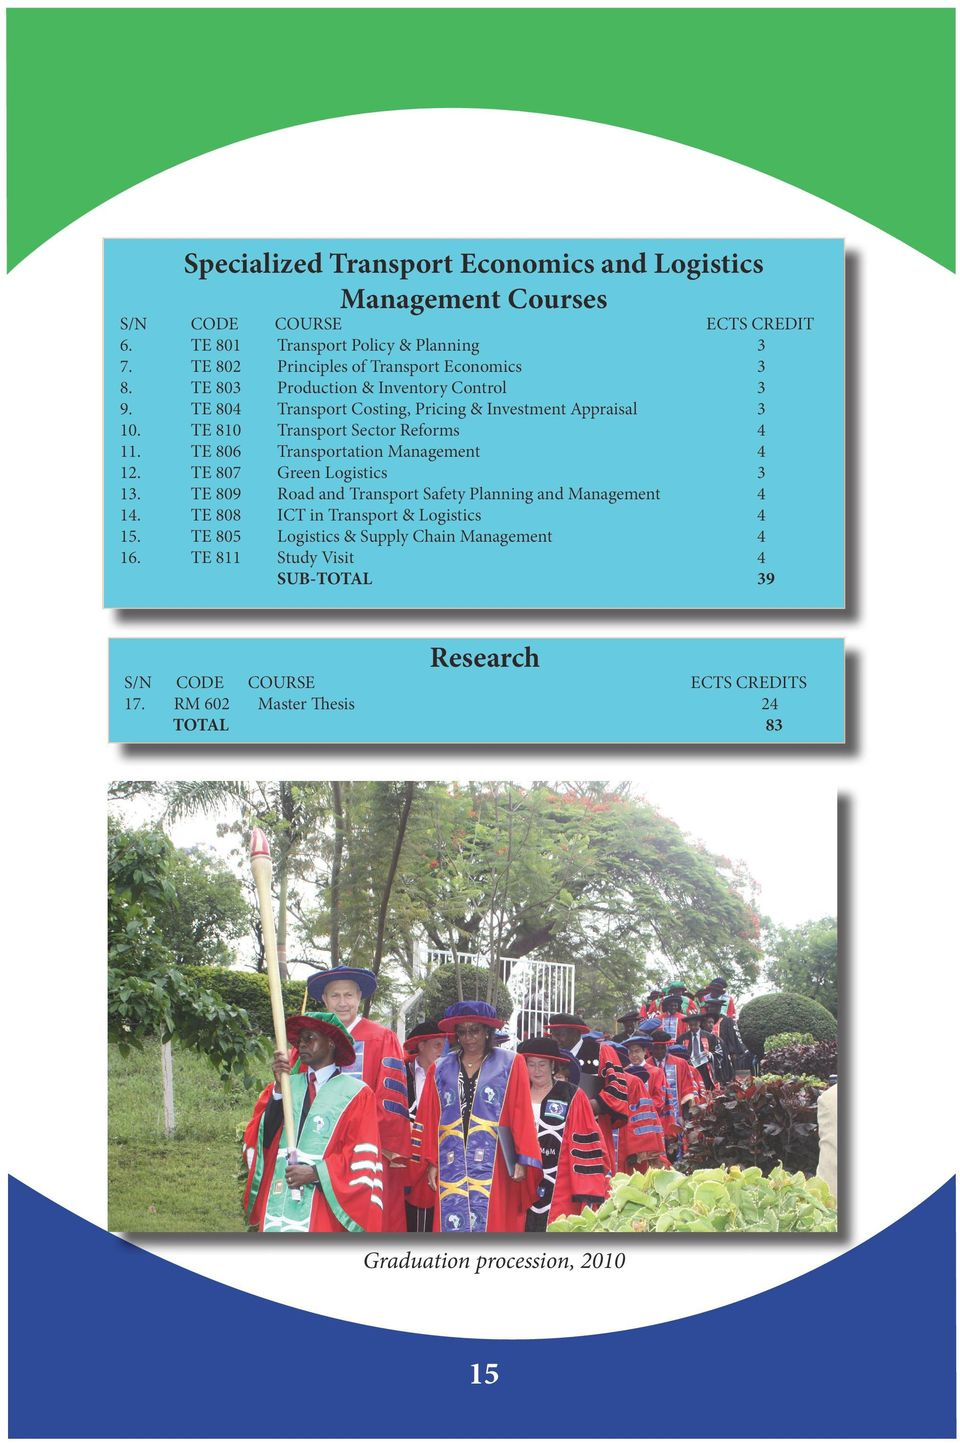 TE 810 Transport Sector Reforms 4 11. TE 806 Transportation Management 4 12. TE 807 Green Logistics 3 13. TE 809 Road and Transport Safety Planning and Management 4 14.